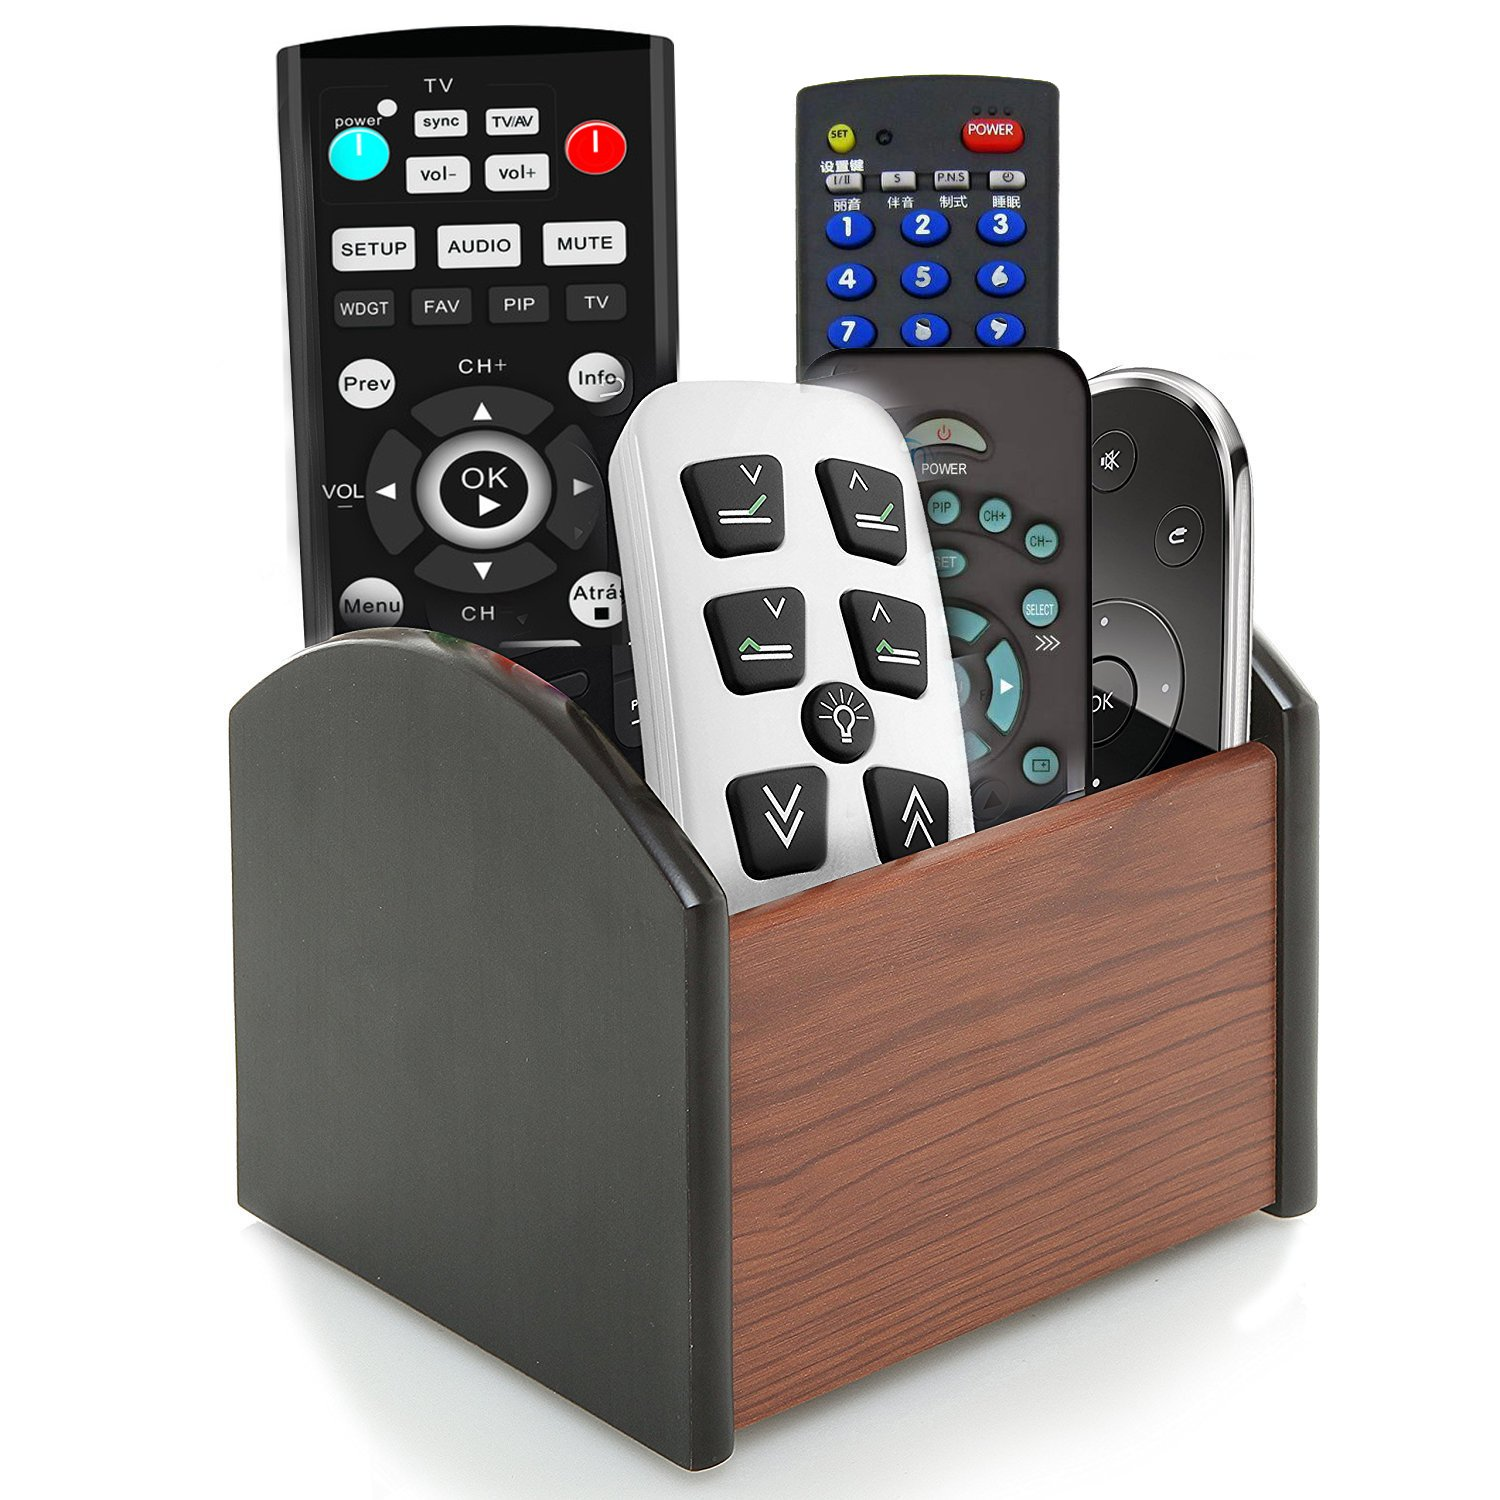 Coideal Rotating Remote Control Holder Stand Caddy/Revolving Wooden Desktop Office Supplies Storage Organizer/Spinning Pen Pencil Stationery Holder Container Box for Desk Table (4 Compartments)